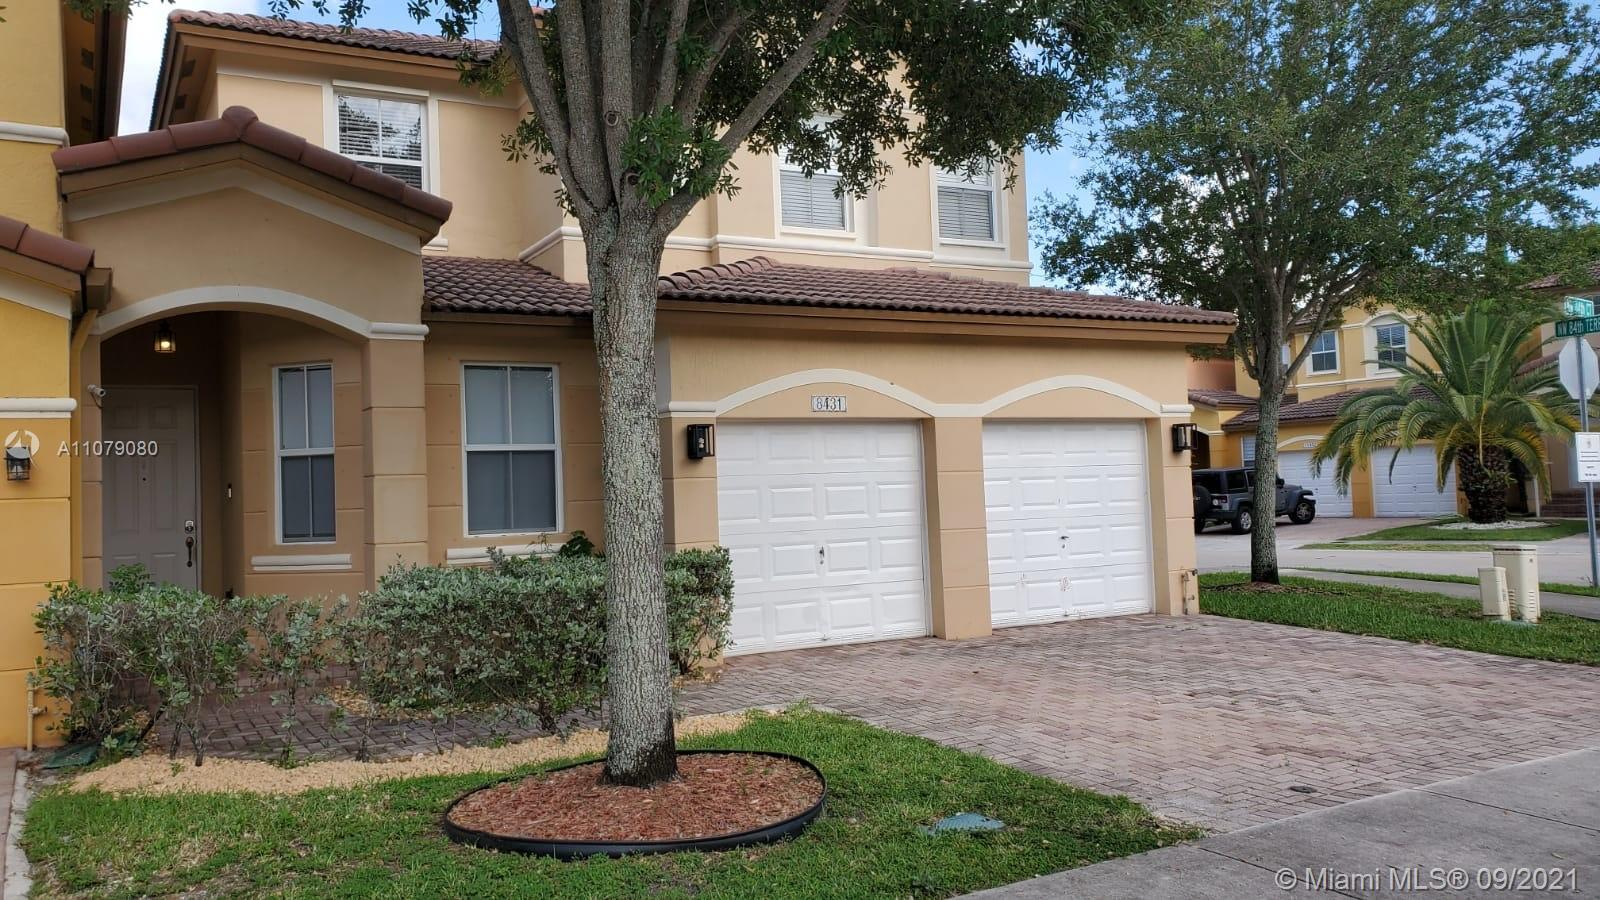 Islands At Doral - 8431 NW 114th ct, Doral, FL 33178